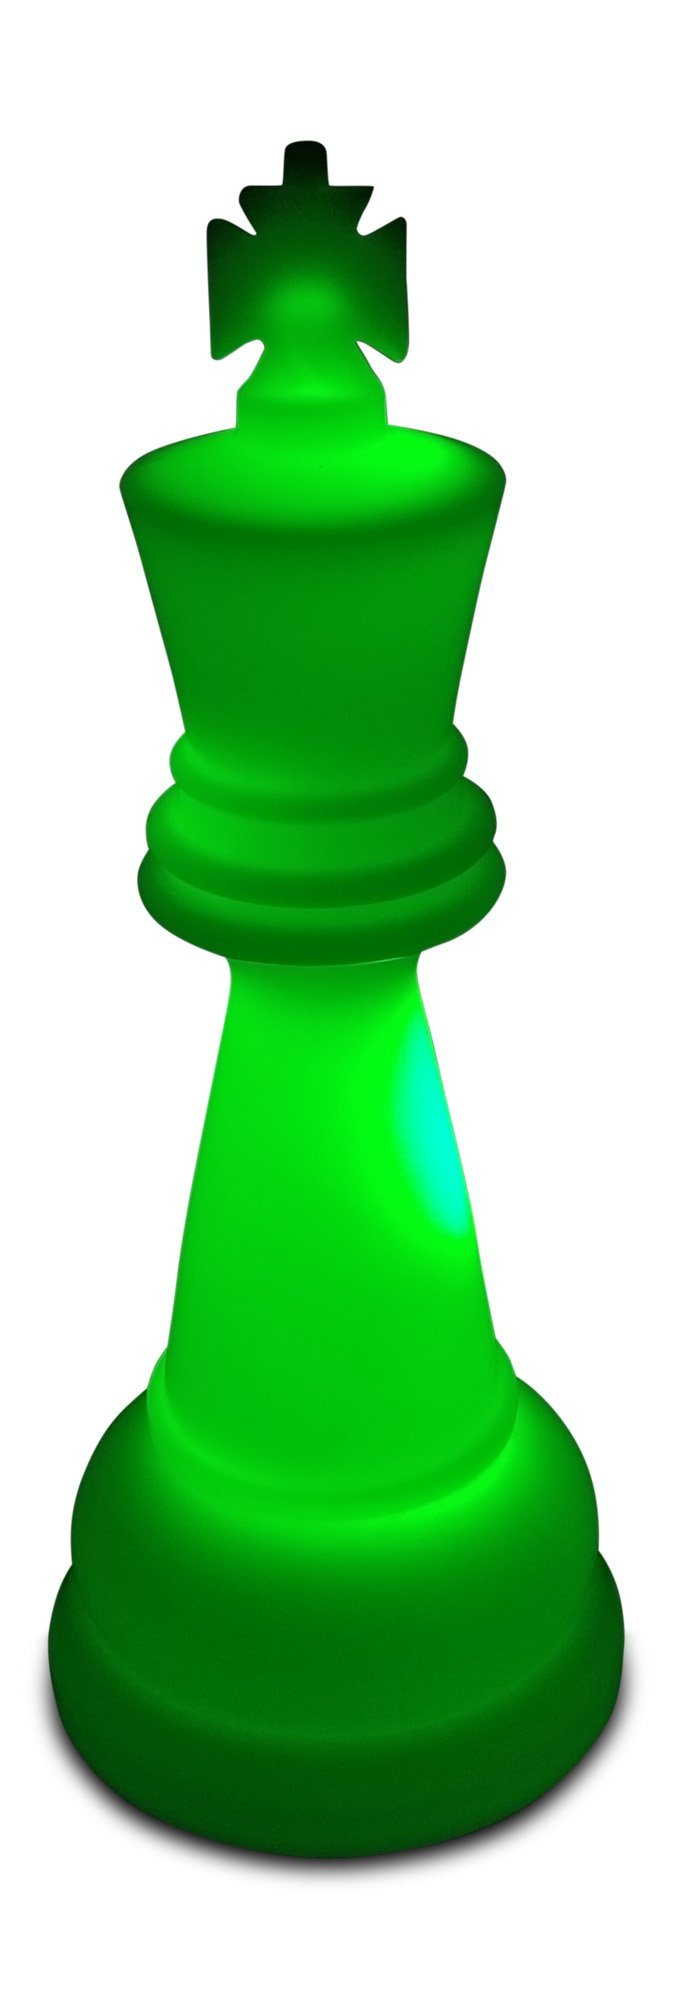 MegaChess 38 Inch Premium Plastic King Light-Up Giant Chess Piece - Green | Default Title | GiantChessUSA